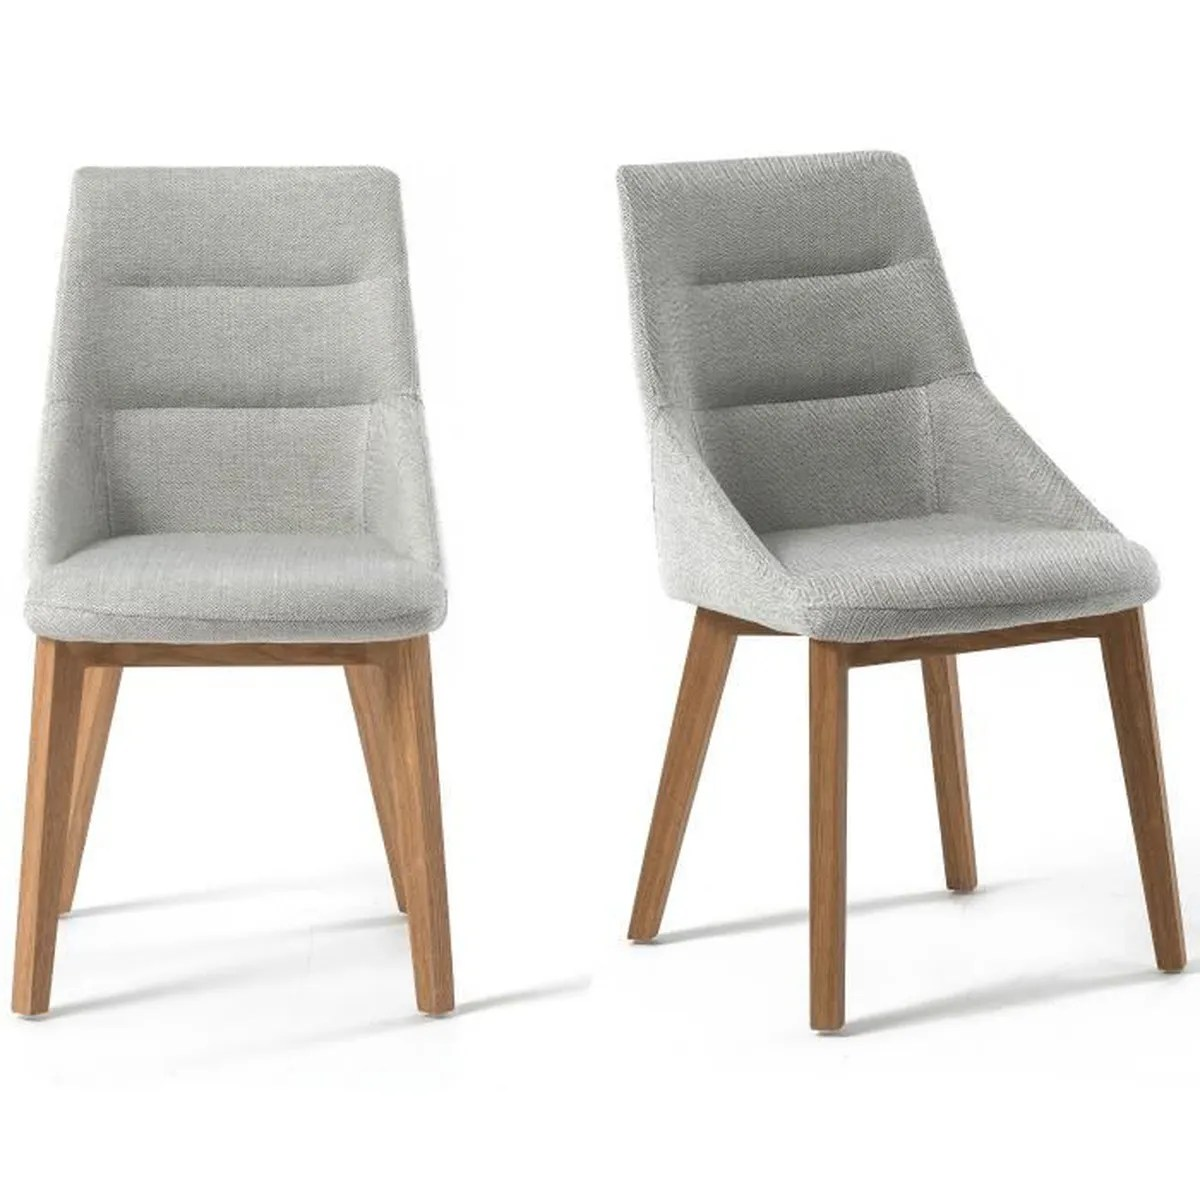 Charly Lot De 2 Tabourets De Bar Noirs Chaise Design Scandinave Lot De 2 Talika Gris Clair Achat